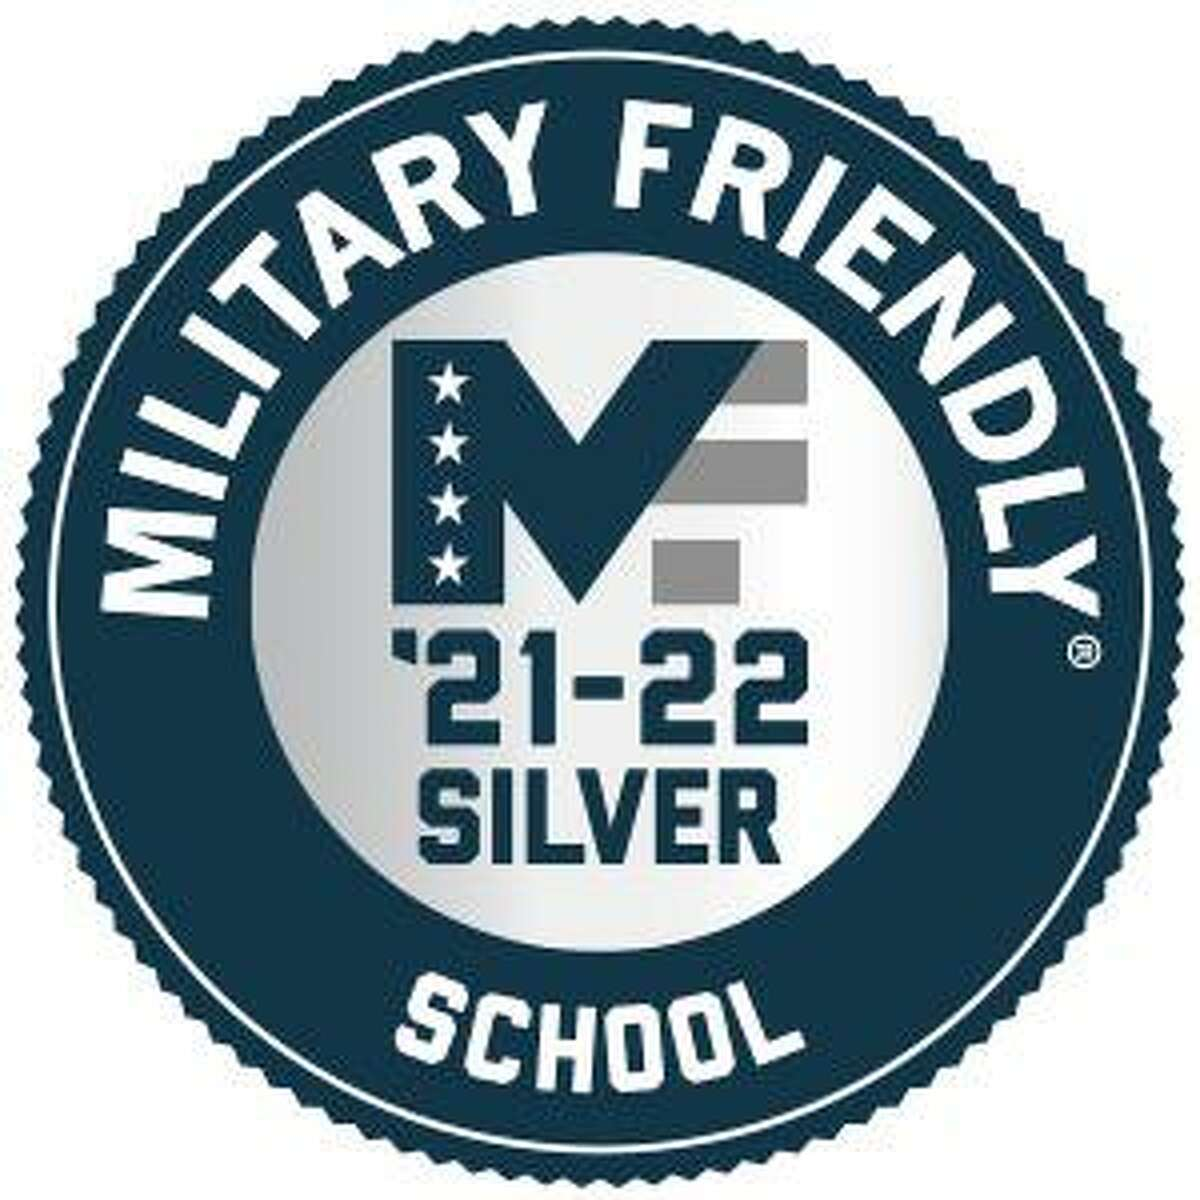 Middlesex Community College has been awarded the 2021-22 Silver Level Military Friendly School designation.